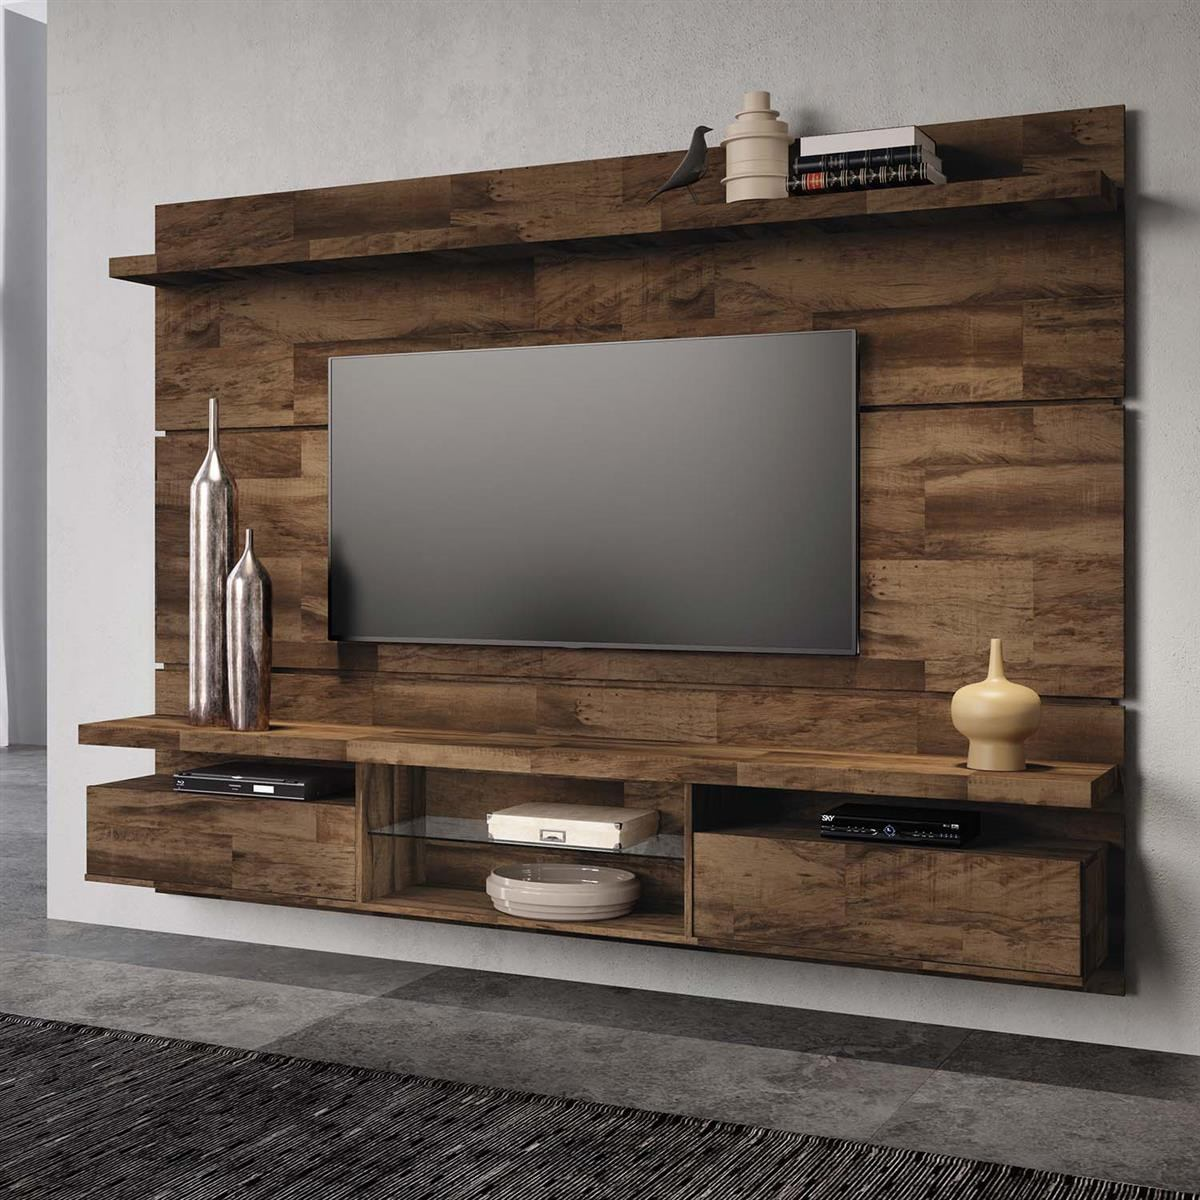 painel home theater suspenso livin 2 2 mocaccino hb m veis r 765 00 em mercado livre. Black Bedroom Furniture Sets. Home Design Ideas